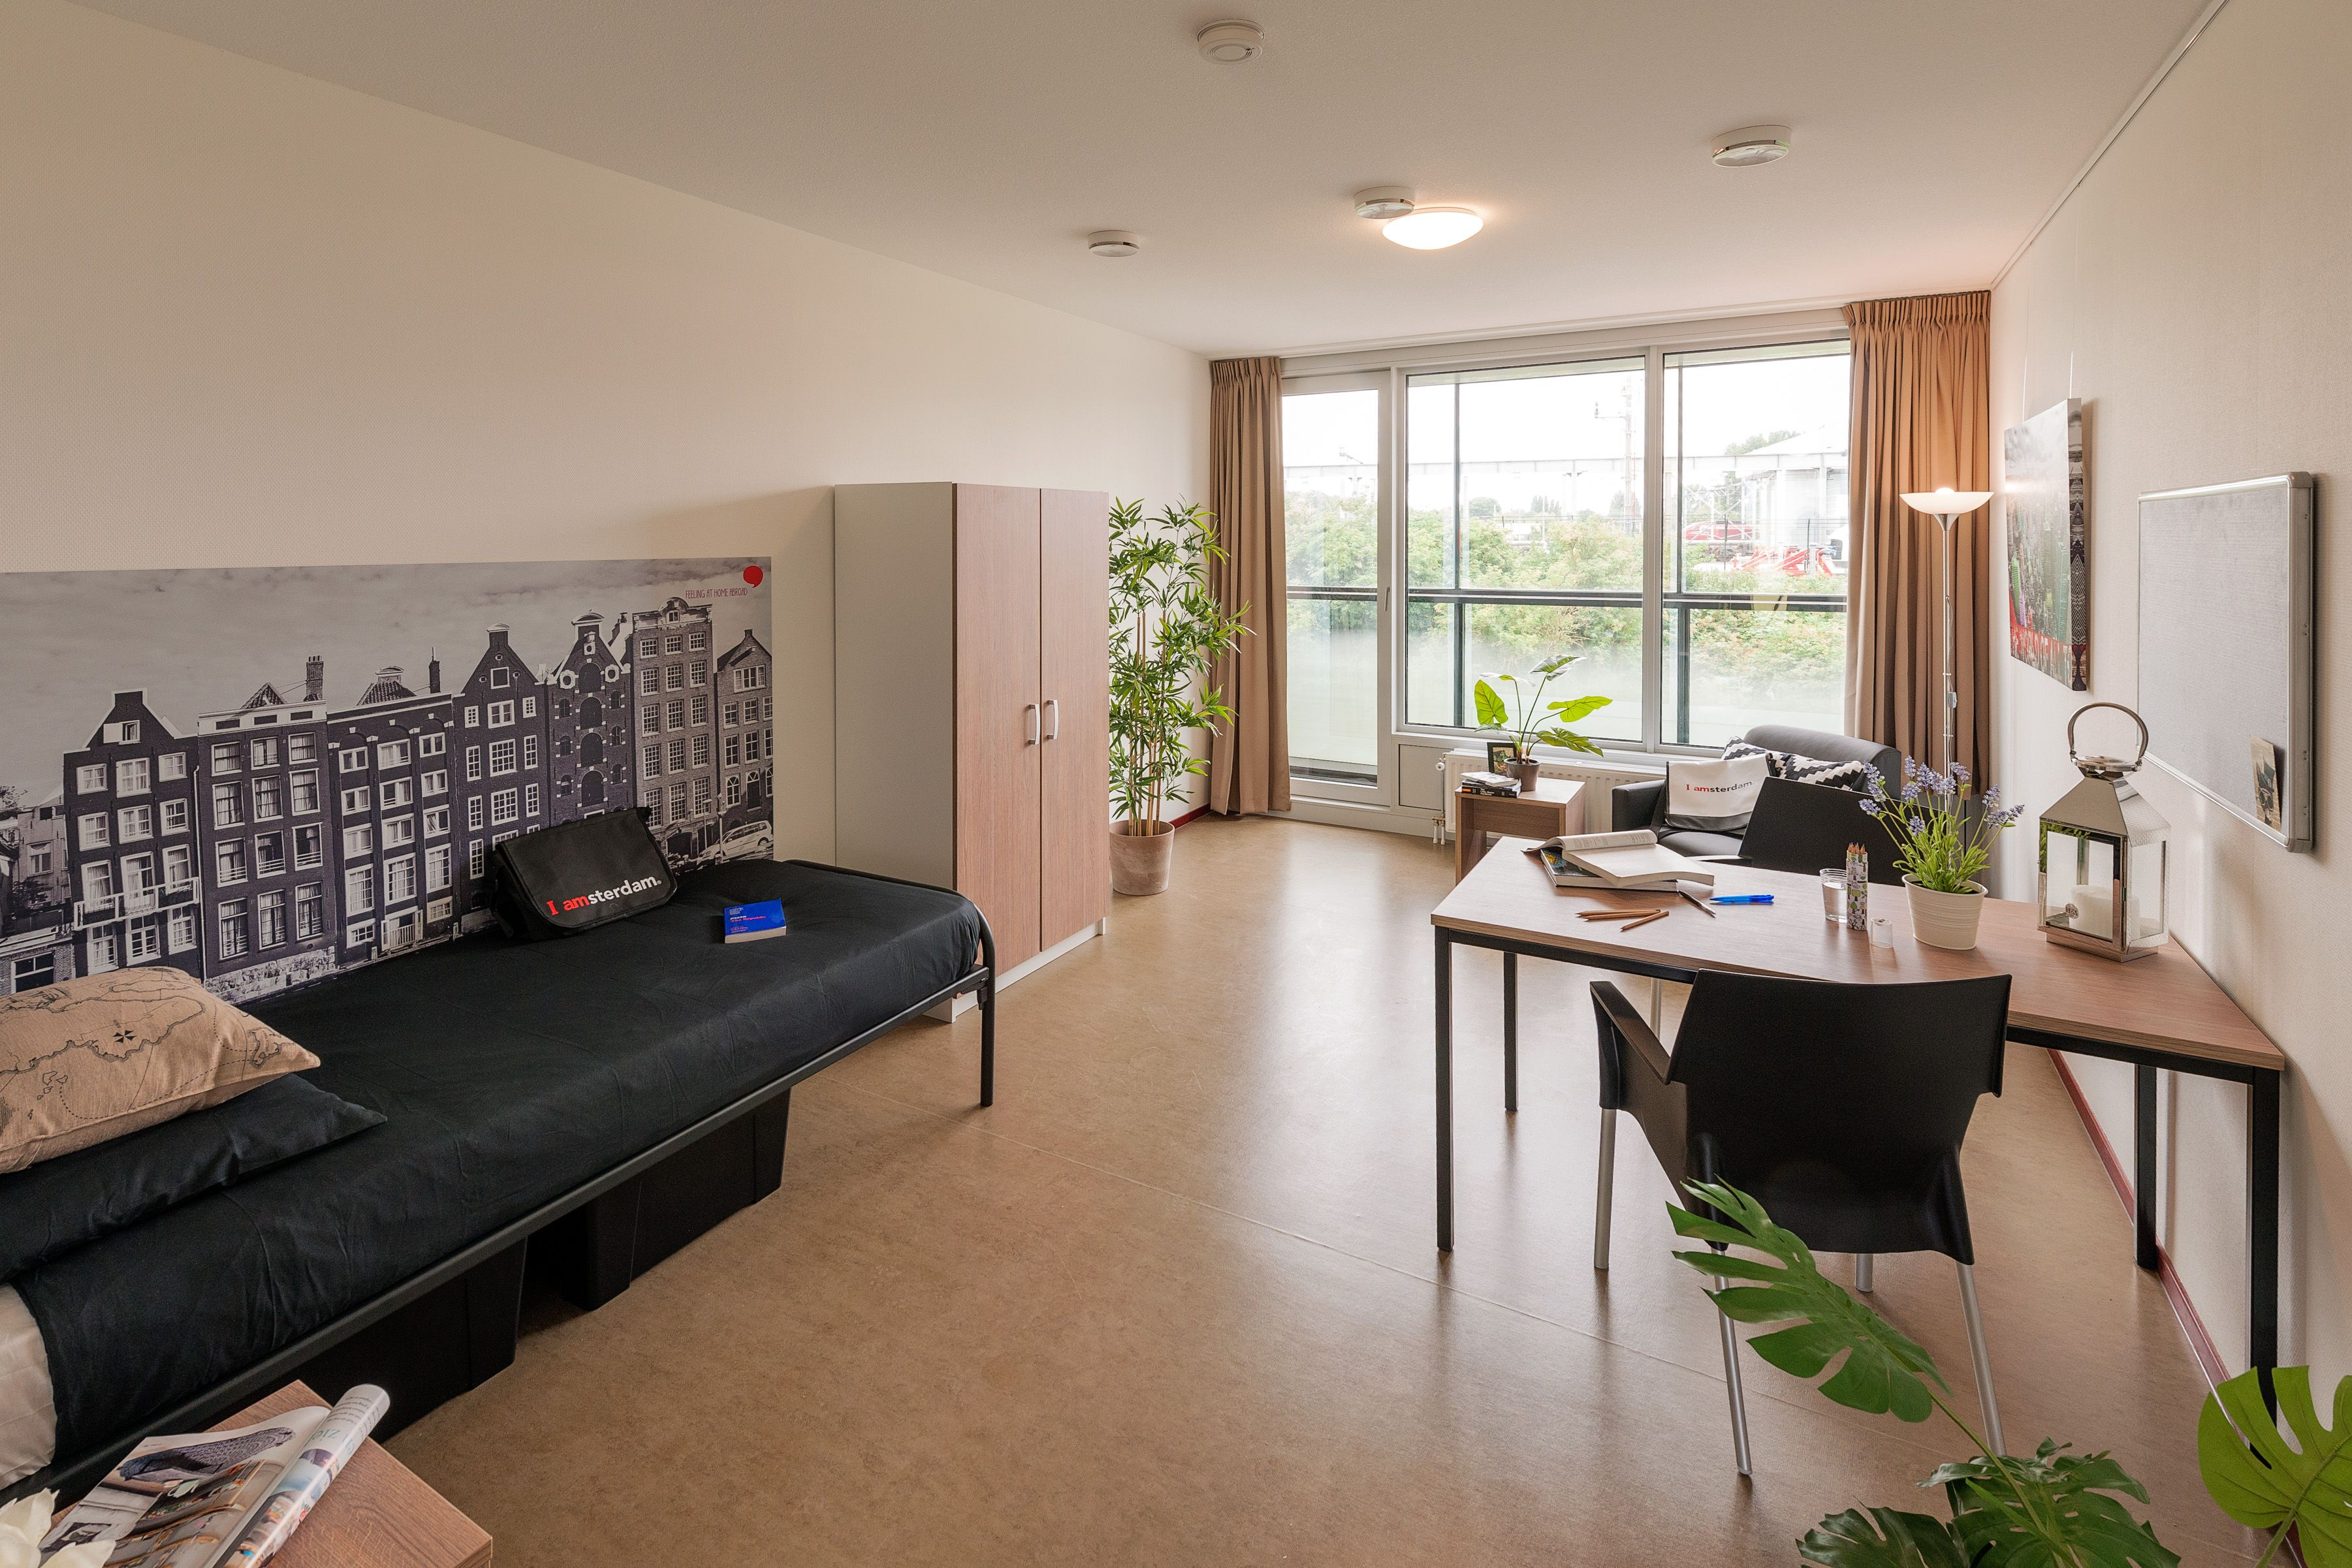 2 Slaapkamer Appartement Amsterdam Studenten Duwo Student Housing At Science Park Ii Carolina Macgillavrylaan